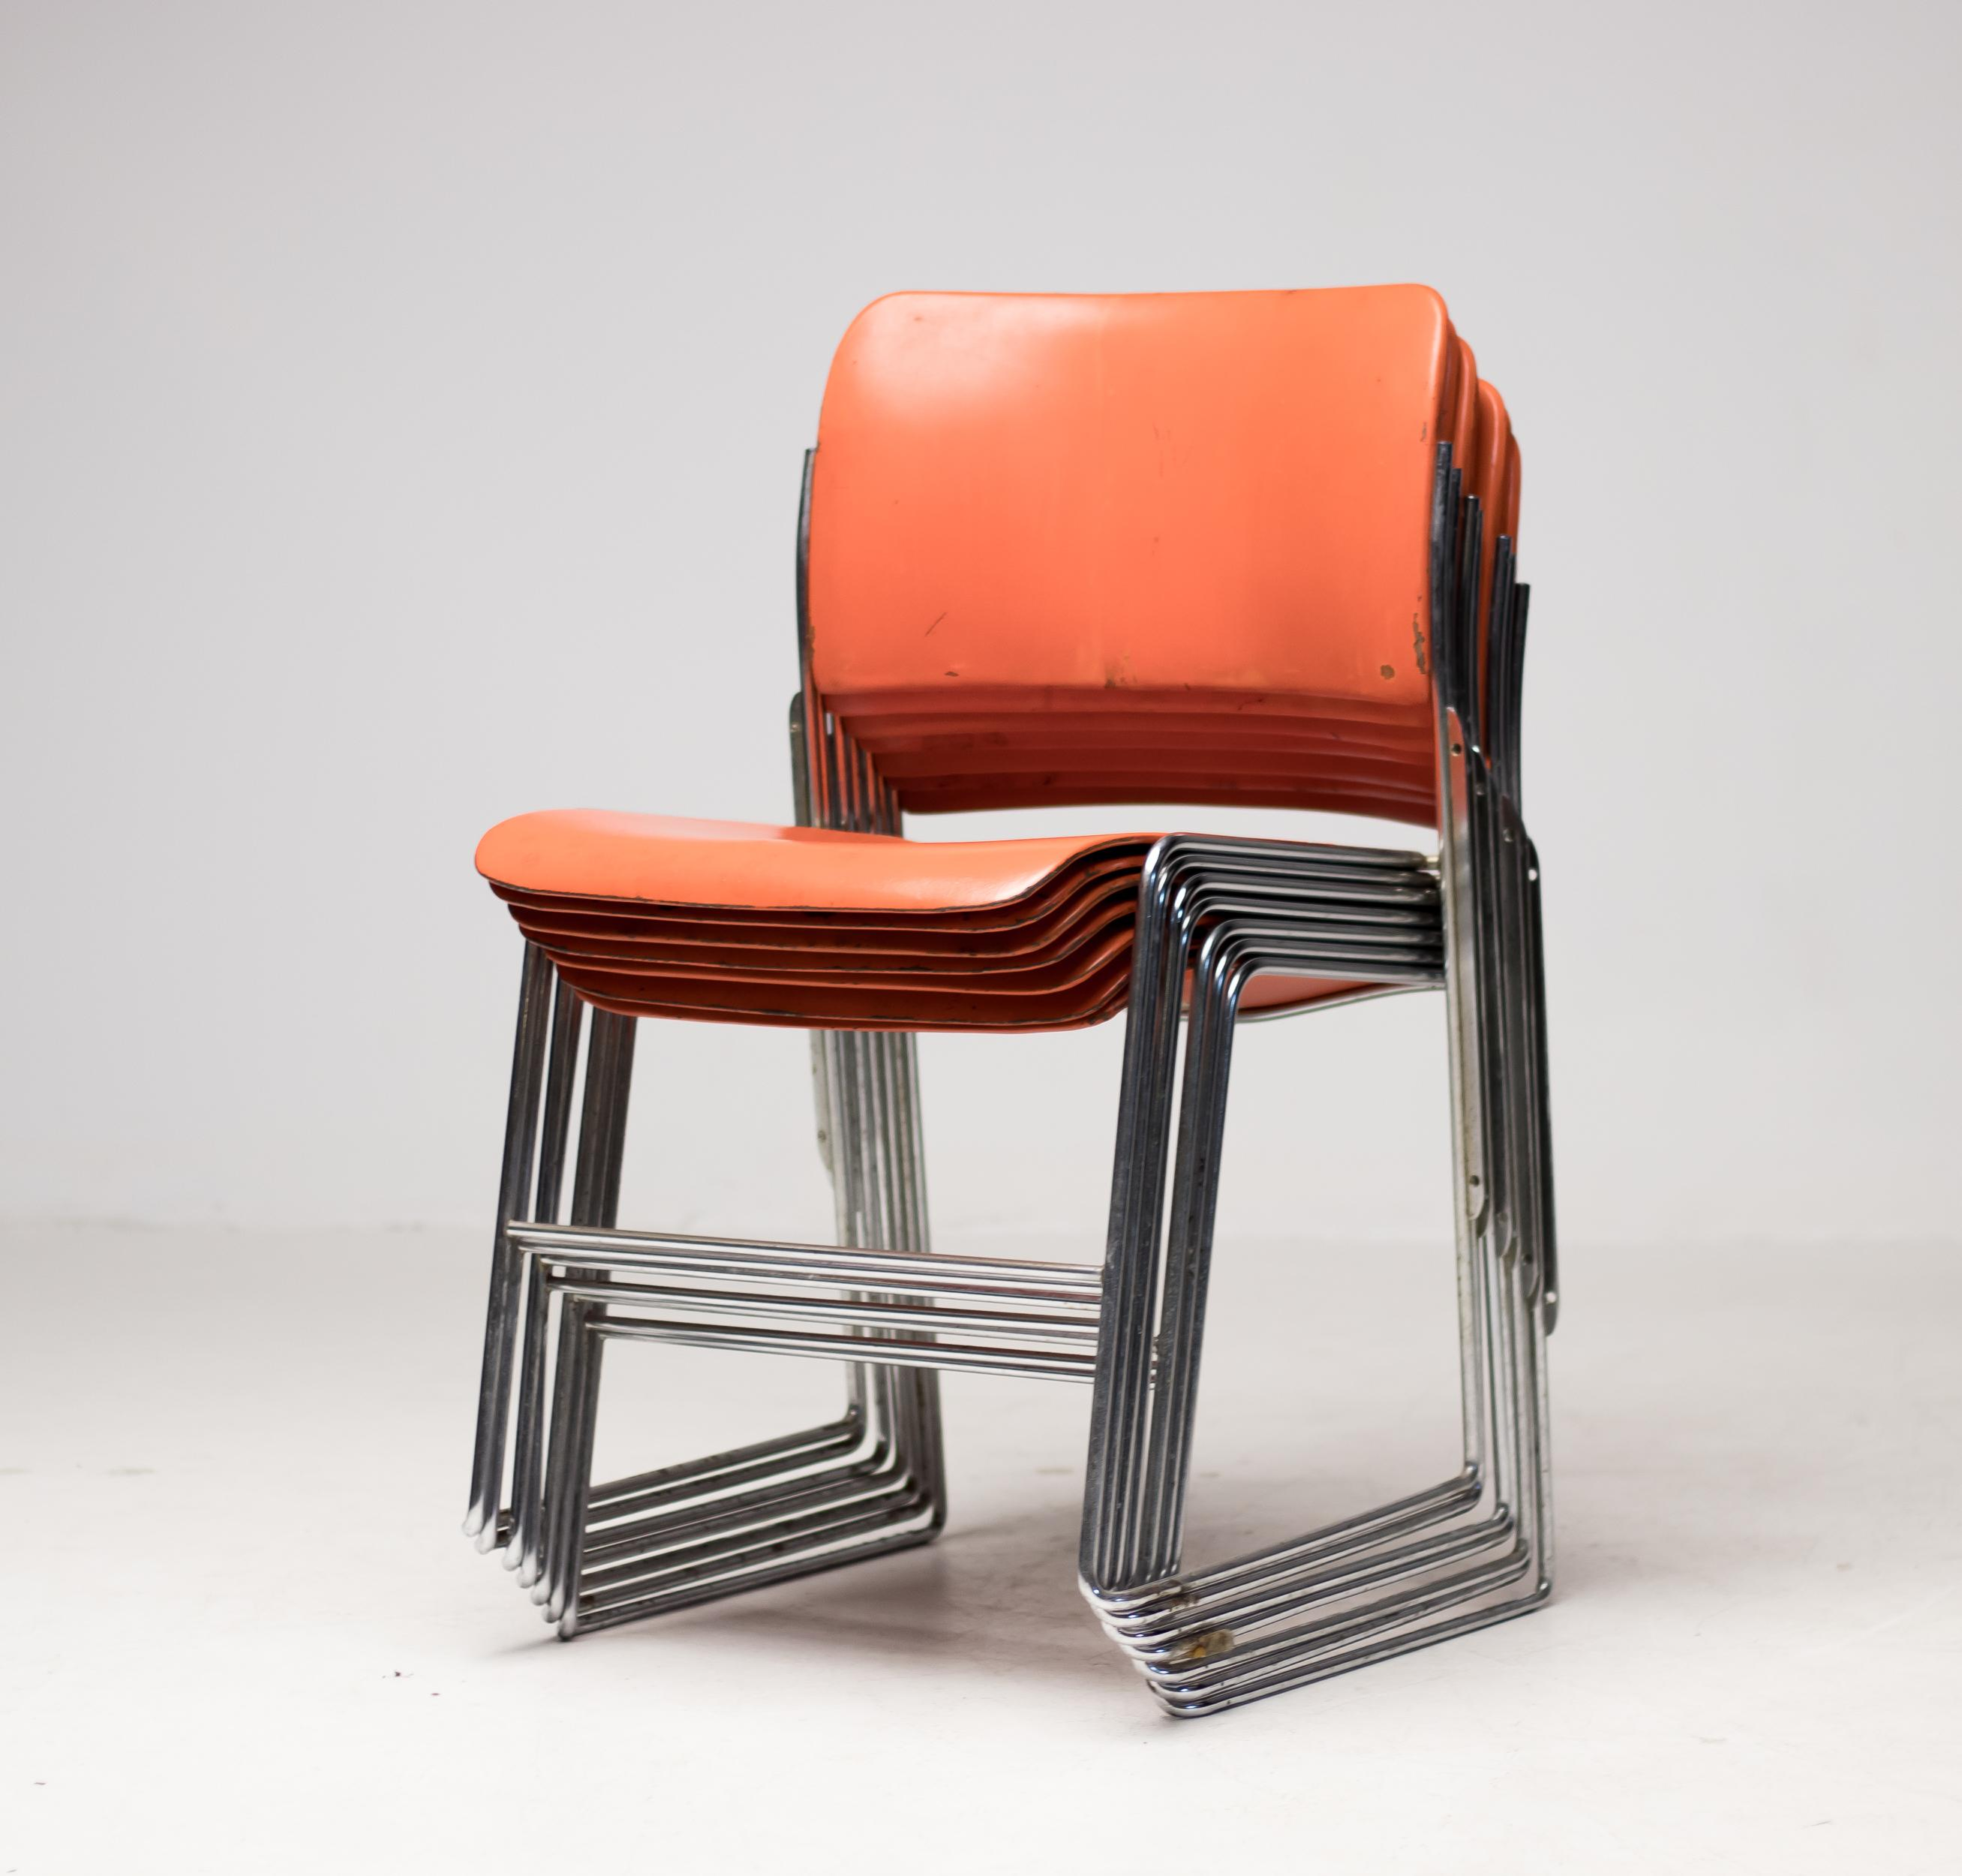 Seven Mid Century Modern Steel Stackable Dining Chairs 40 4 By David Rowland